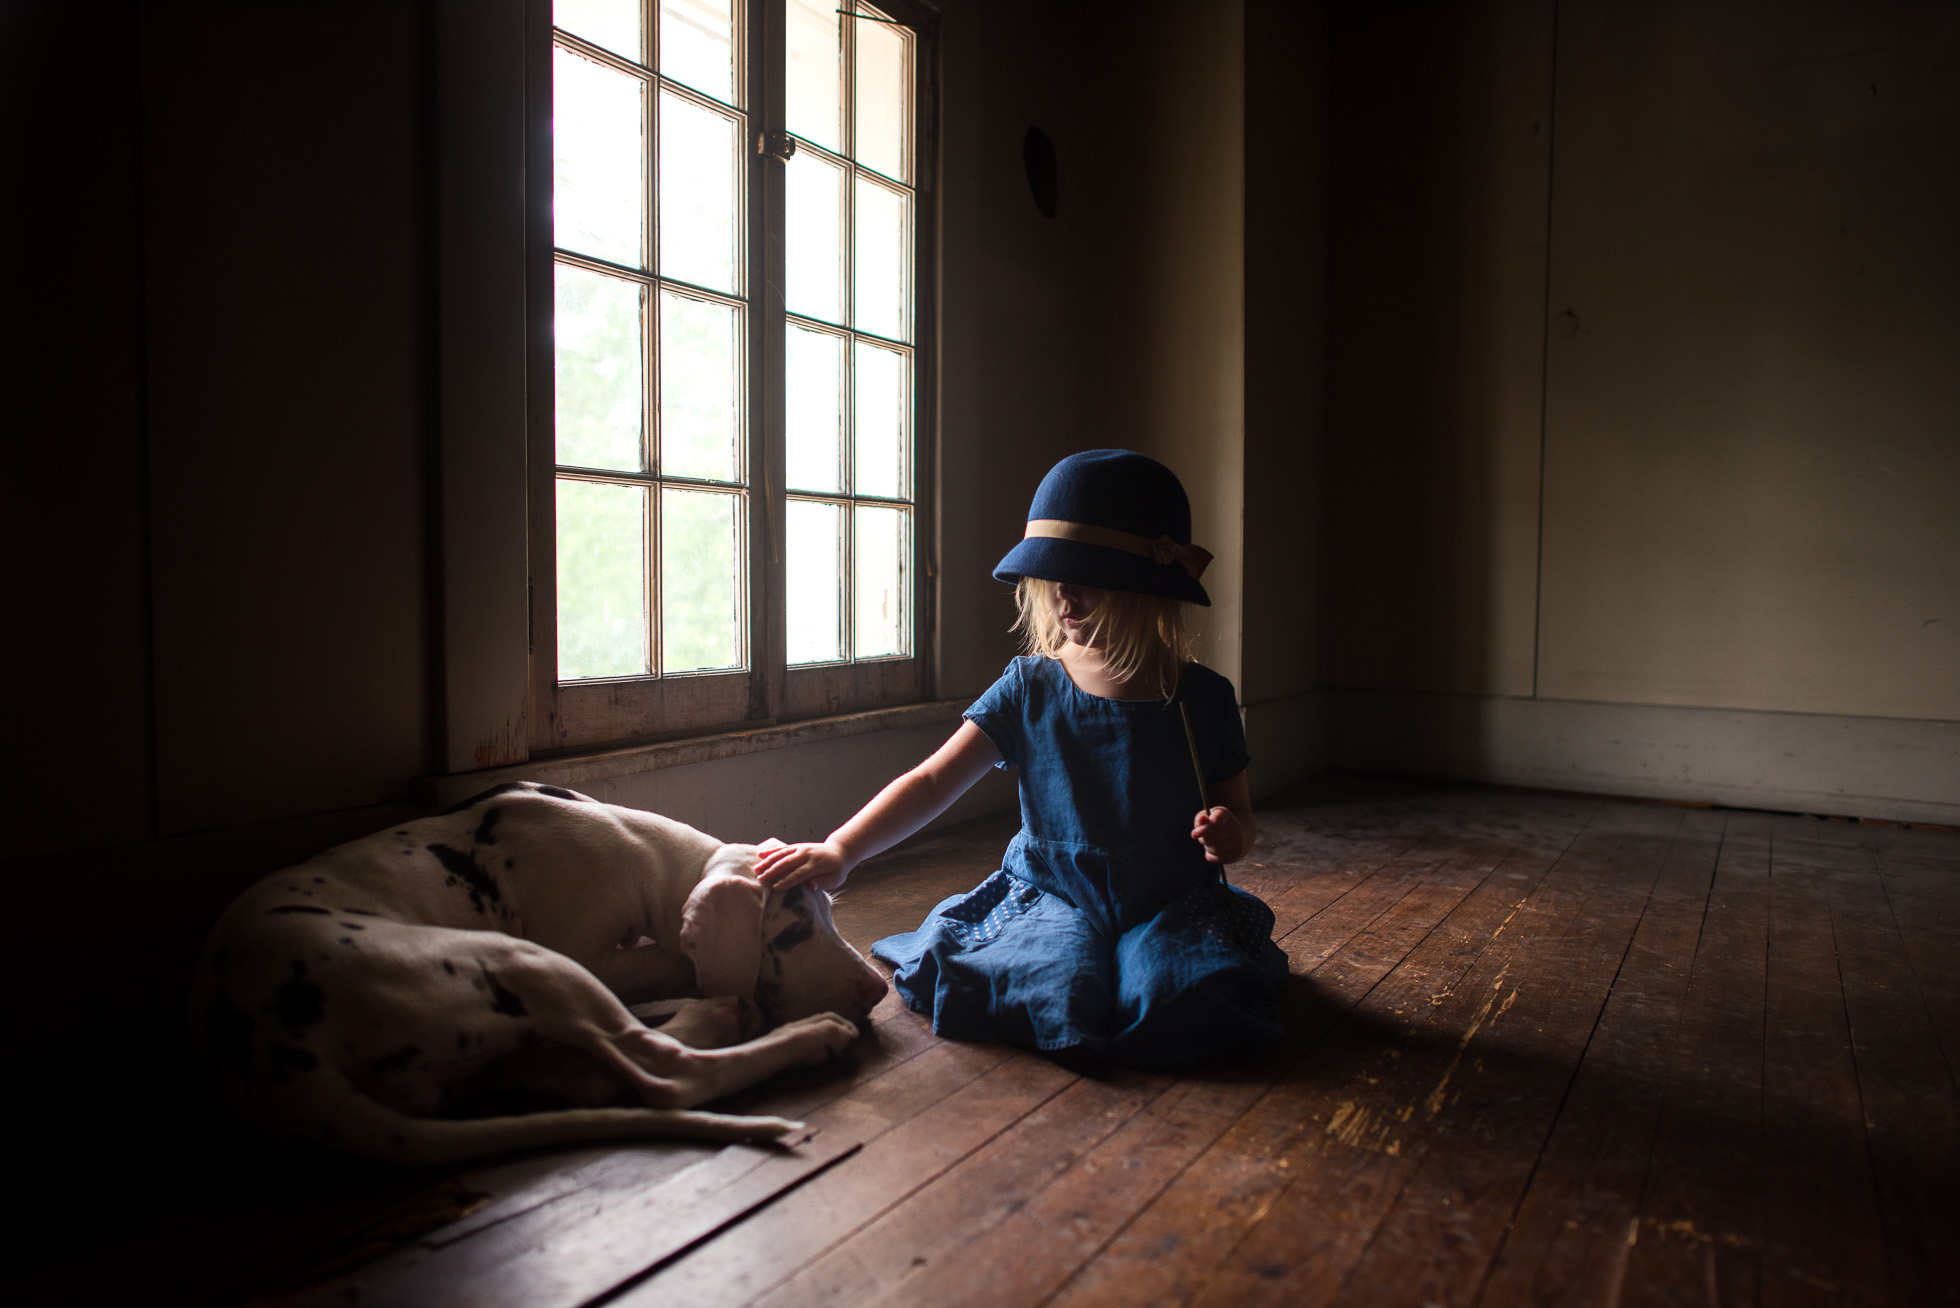 little-girl-with-old-fashioned-hat-standing-in-window-light-of-spooky-attic-with-harlequin-great-dane-puppy-by-sarah-wilkerson-0990